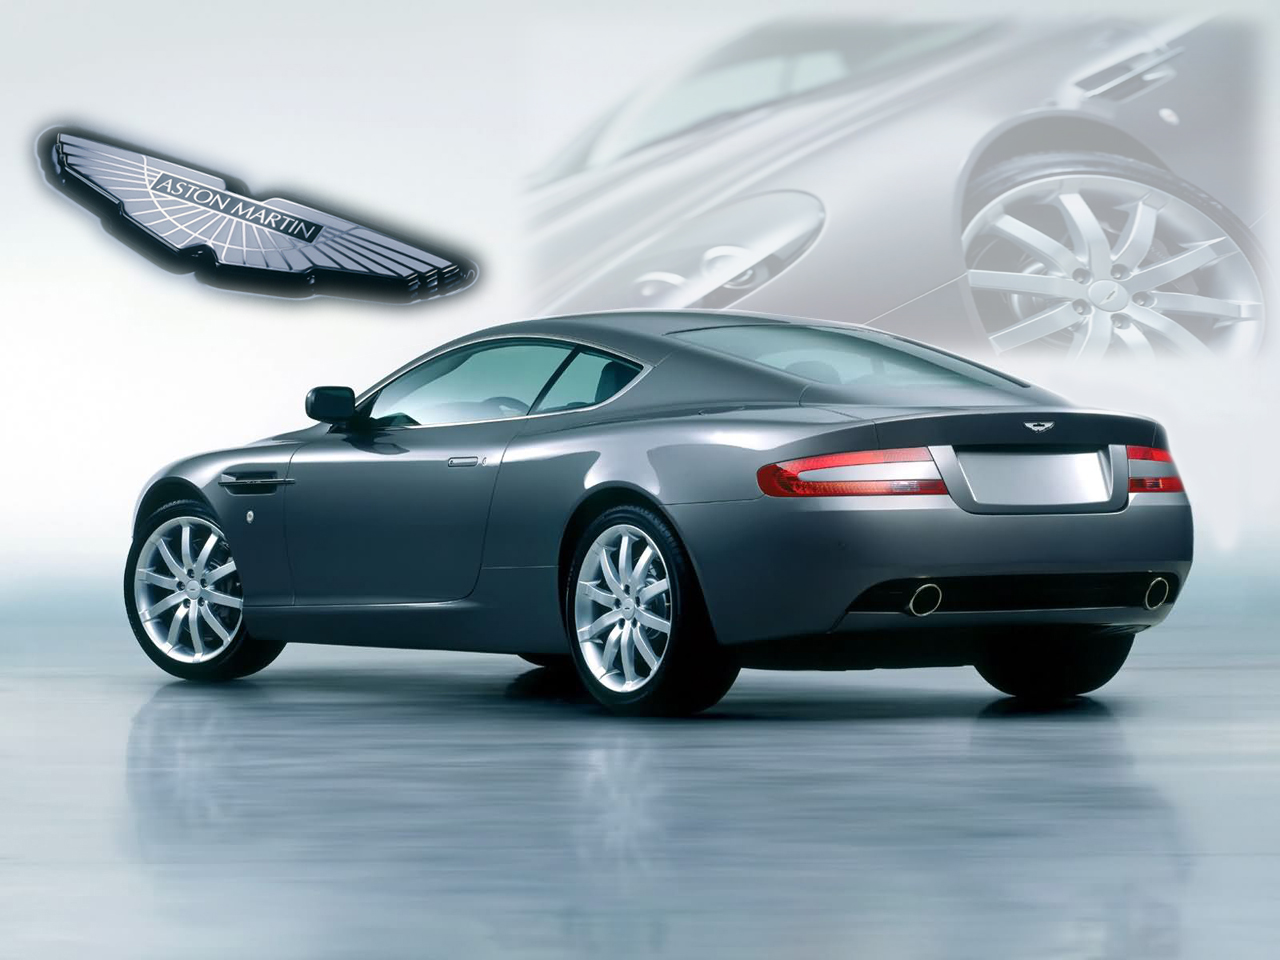 Wallpaper Aston Martin Db Wallpaper High Resolution Download Hd 1280x960